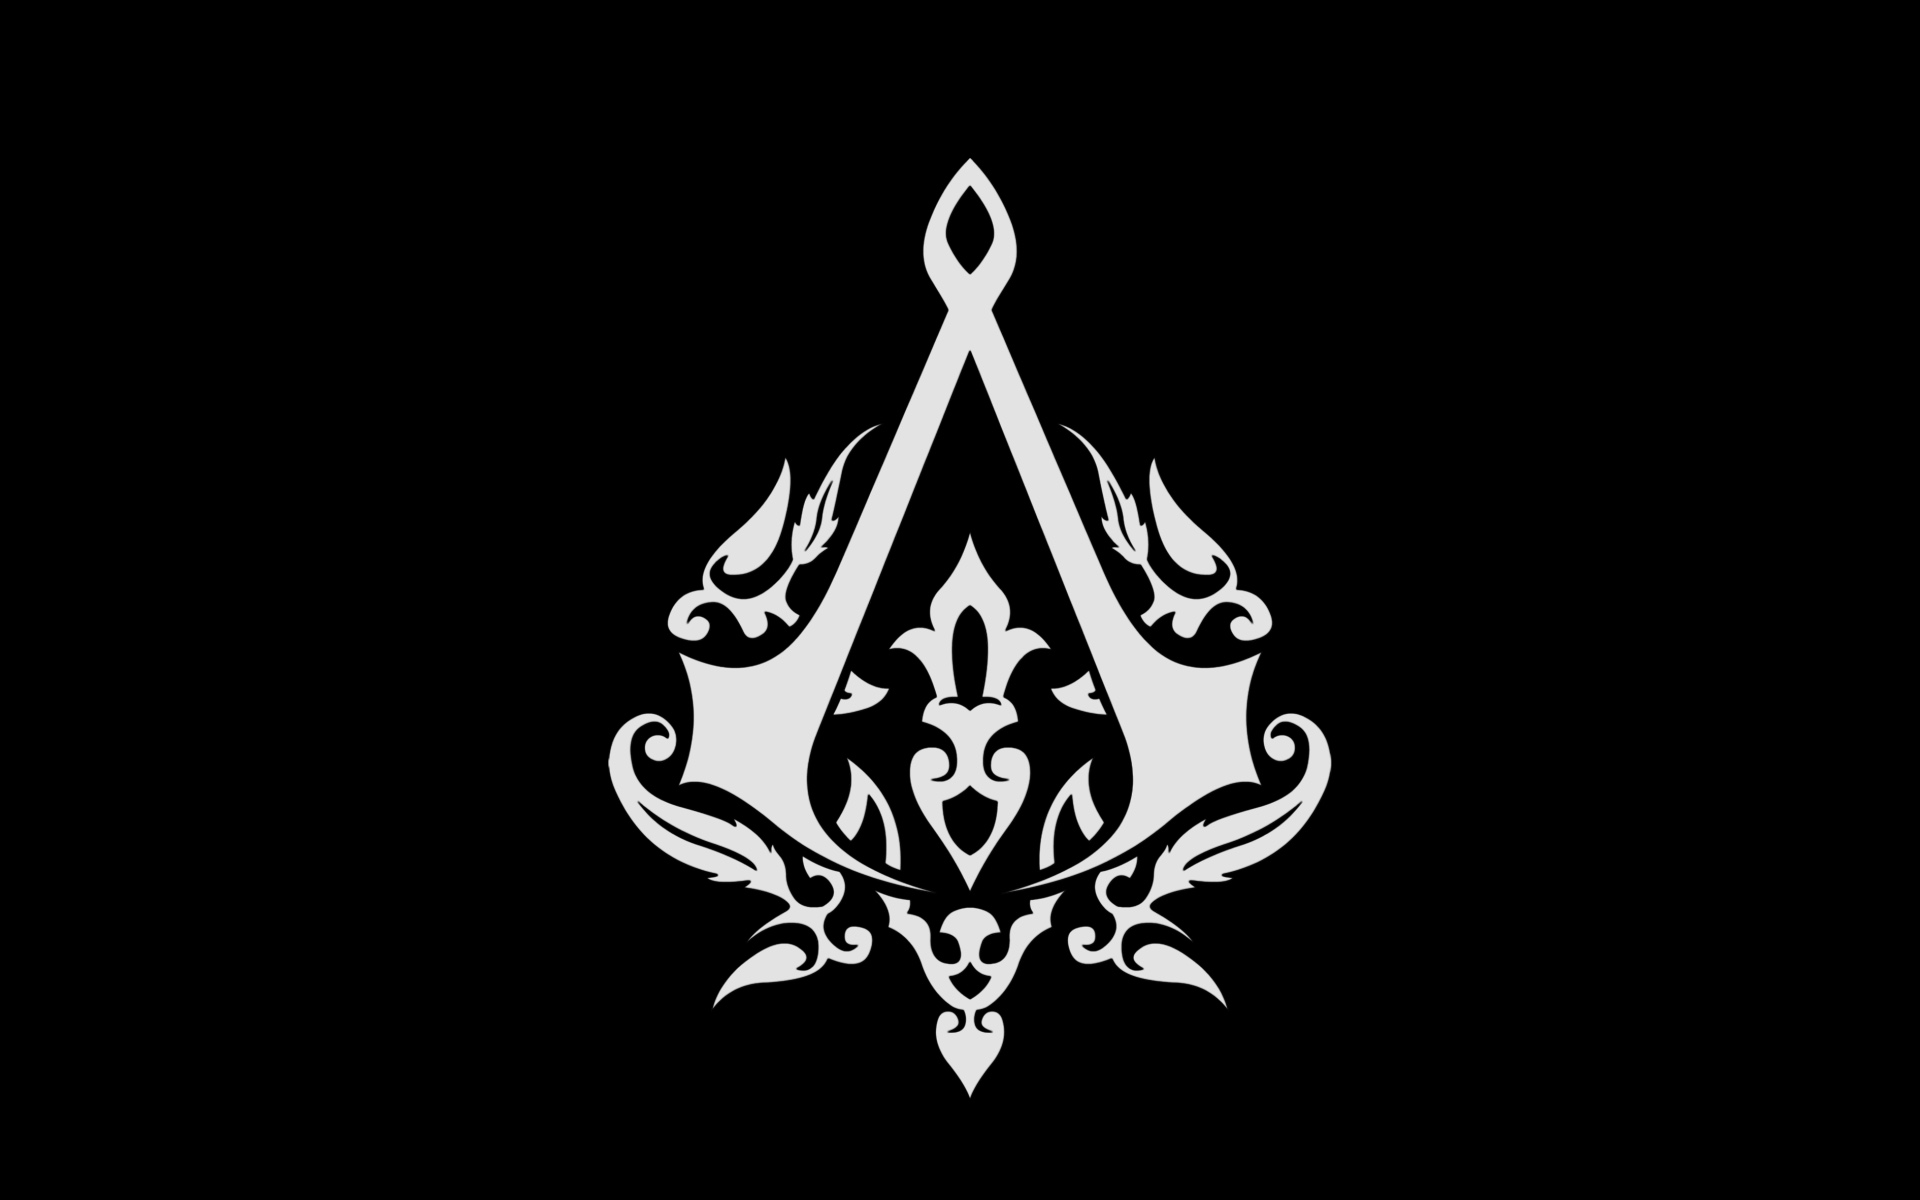 assassins creed logo wallpaper 4k